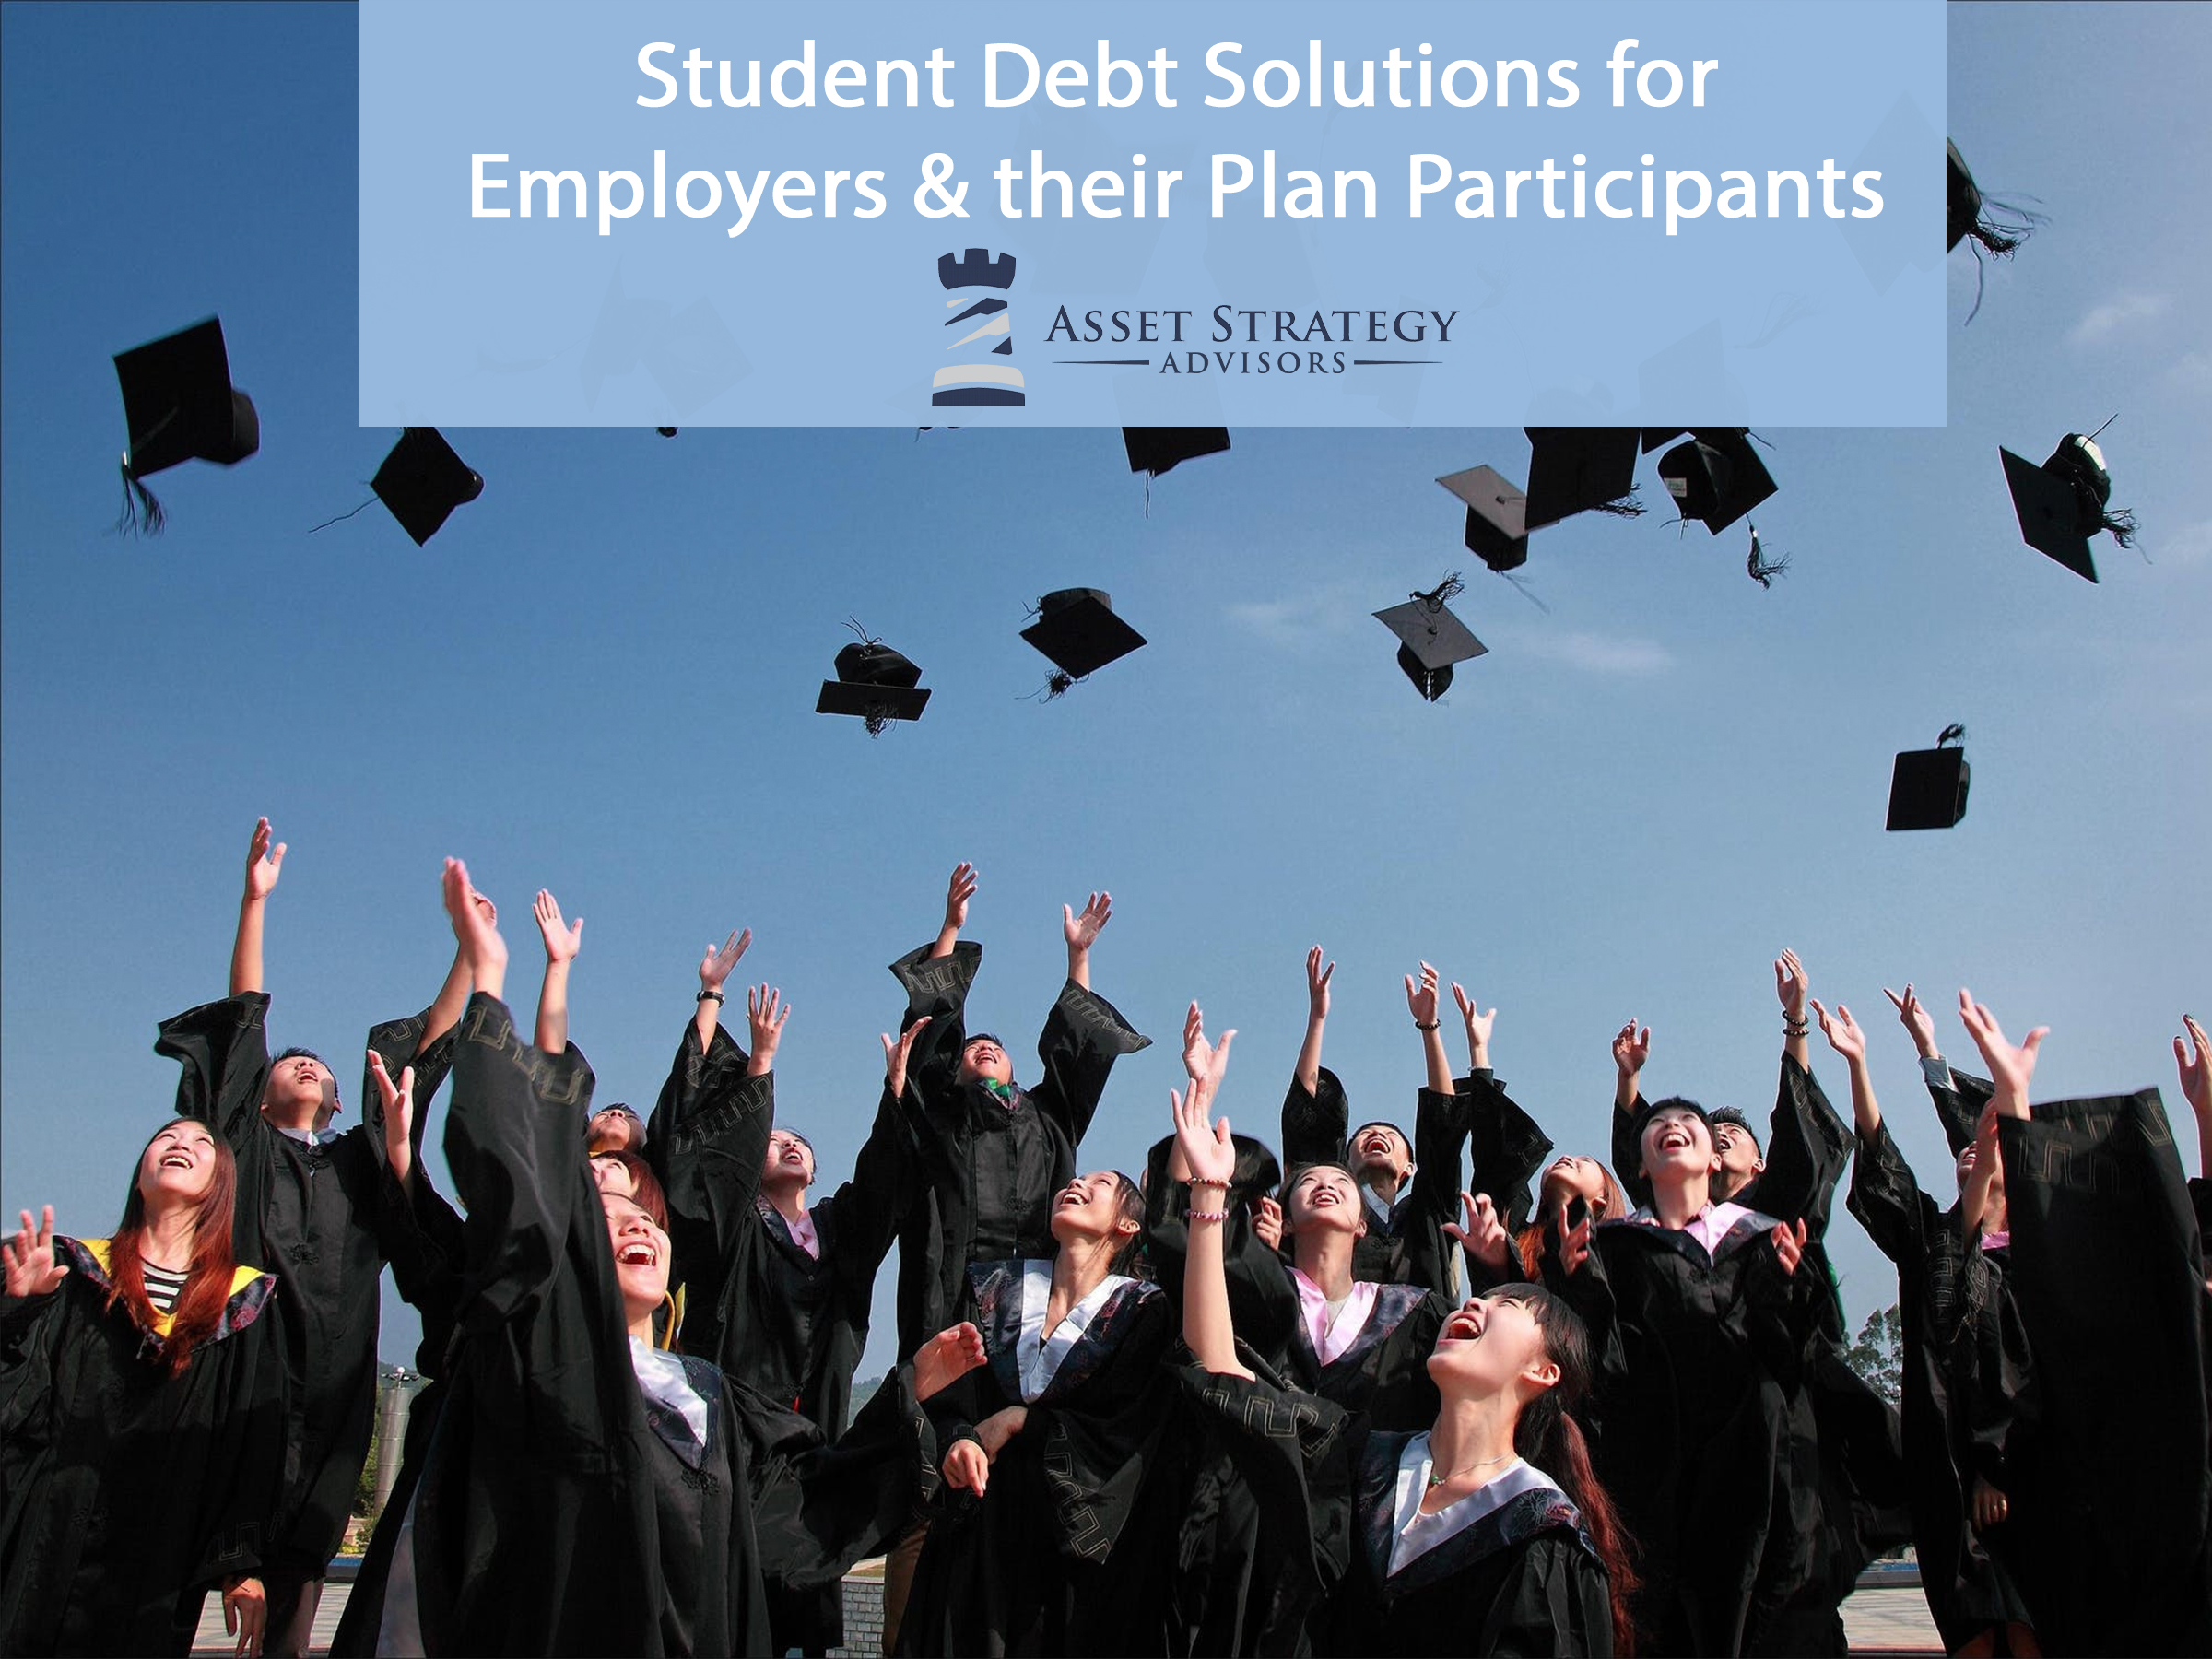 Student Debt Solutions for Employers & their Plan Participants.jpg